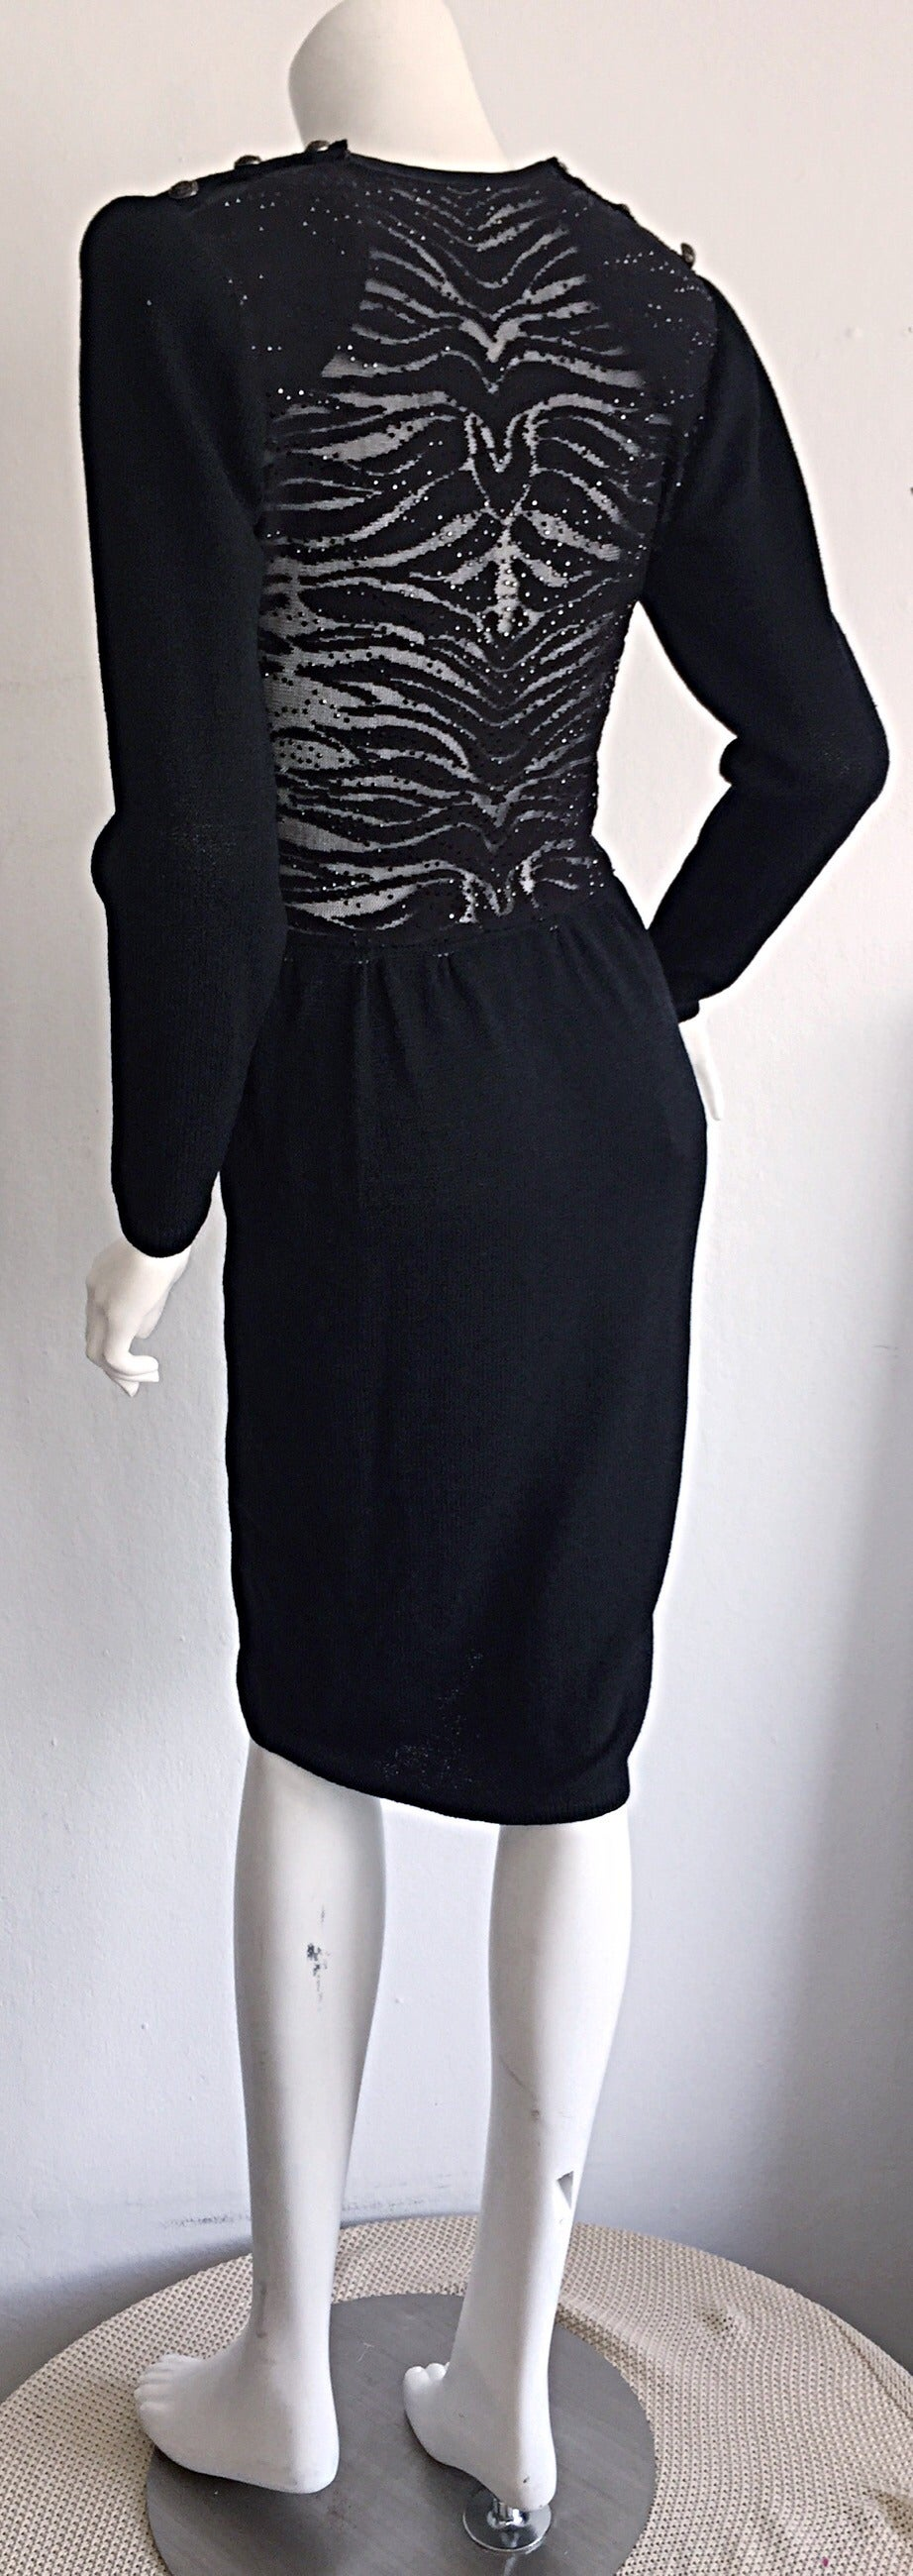 Vintage St. John Neiman Marcus Black Dress w/ Sheer Sparkle Zebra Back 4